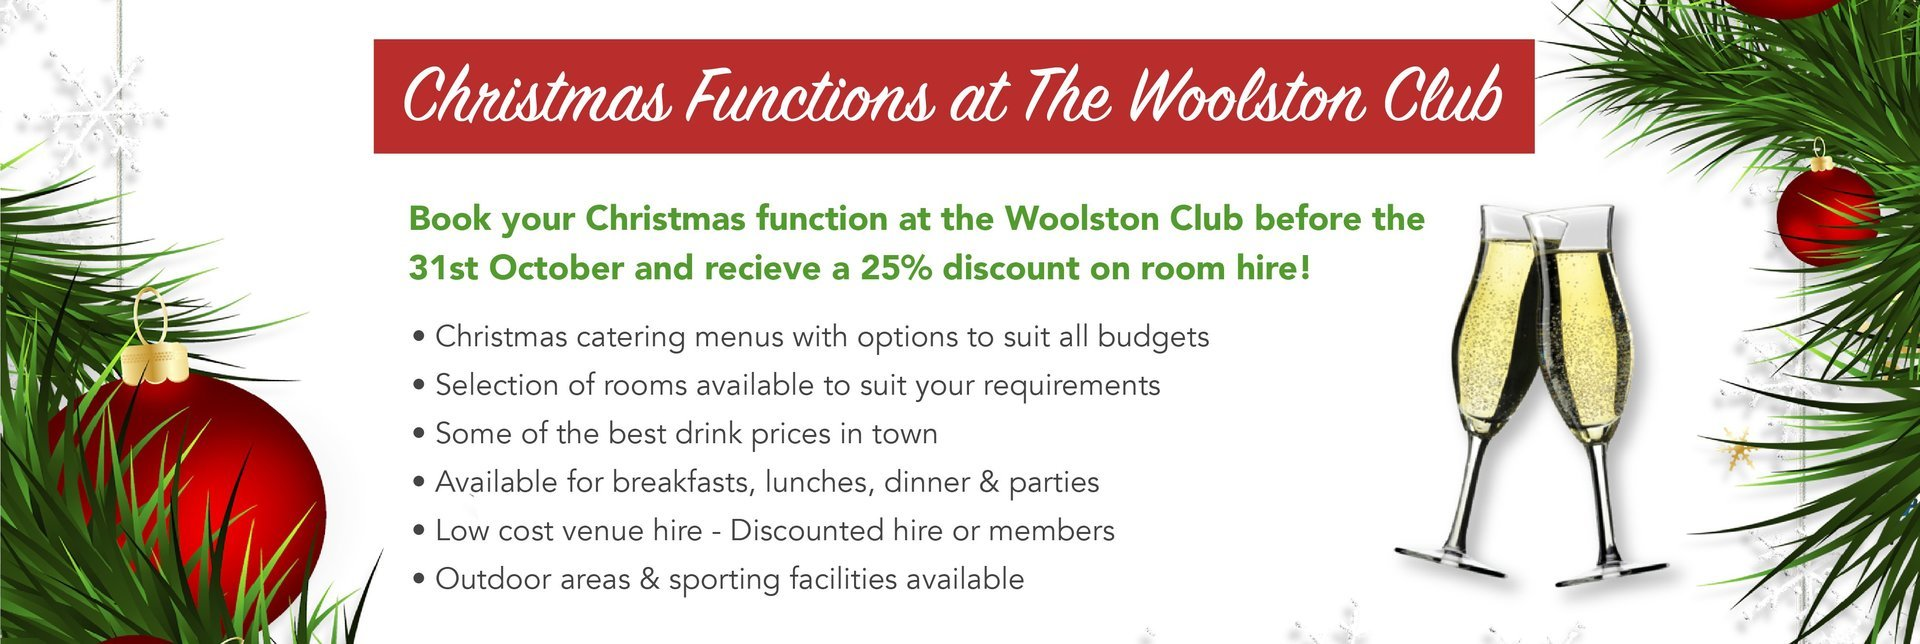 Christmas Functions at The Woolston Club